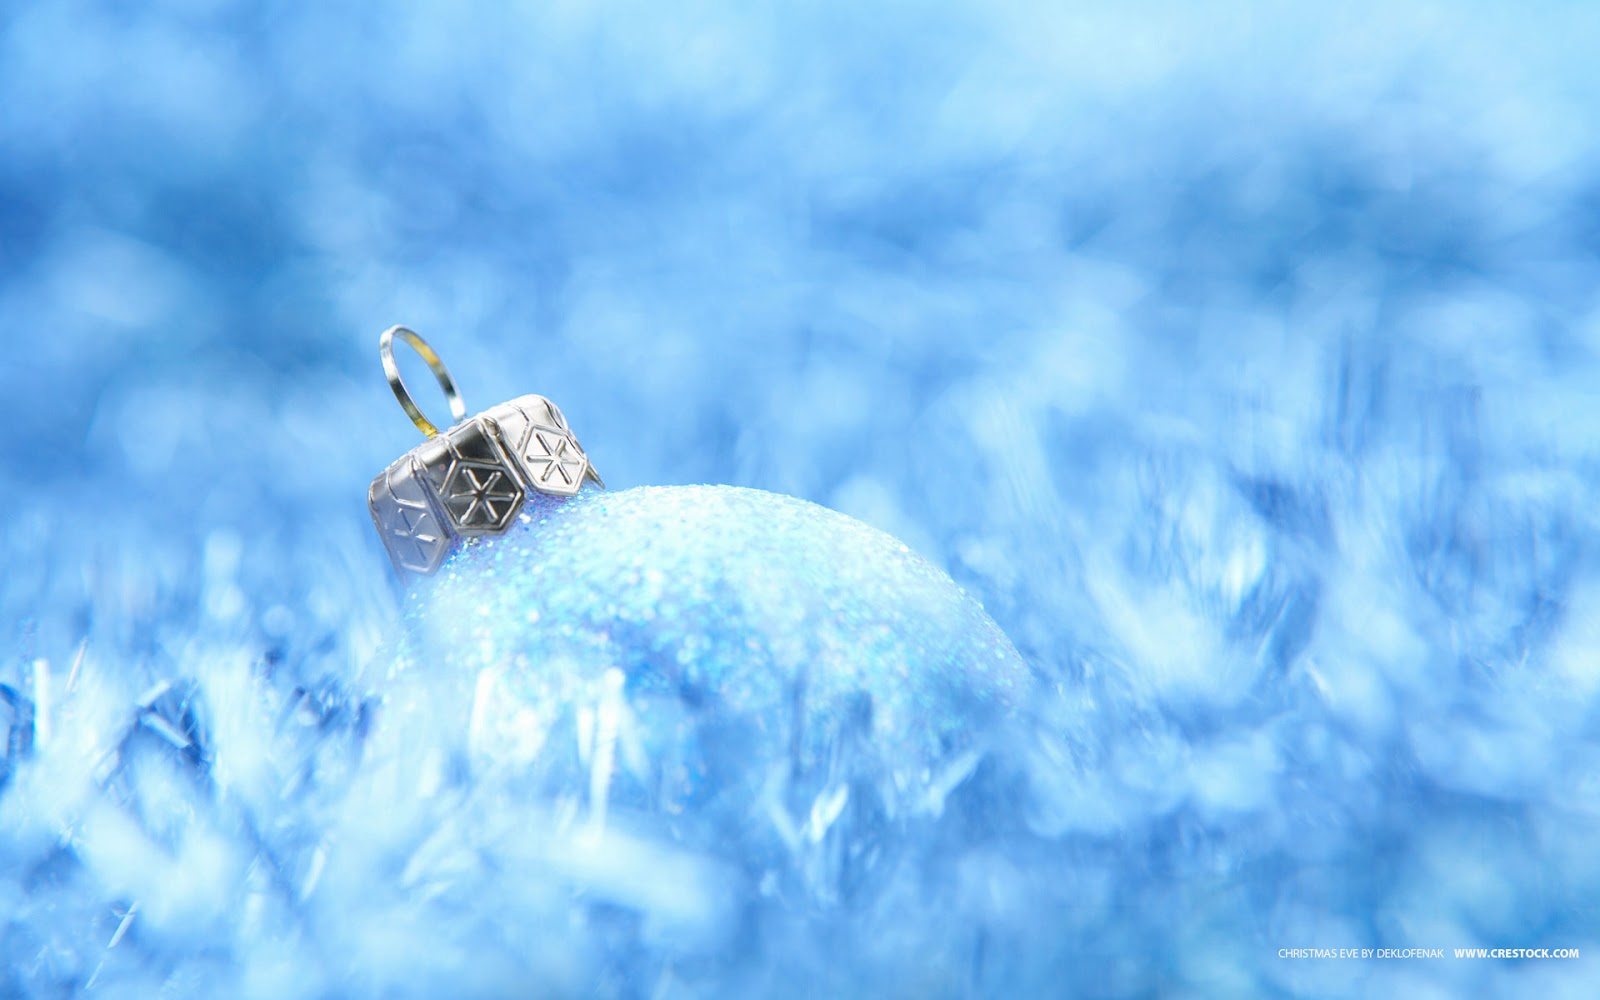 Snow Theme Merry Christmas Backgrounds Wallpapers Download 1600x1000